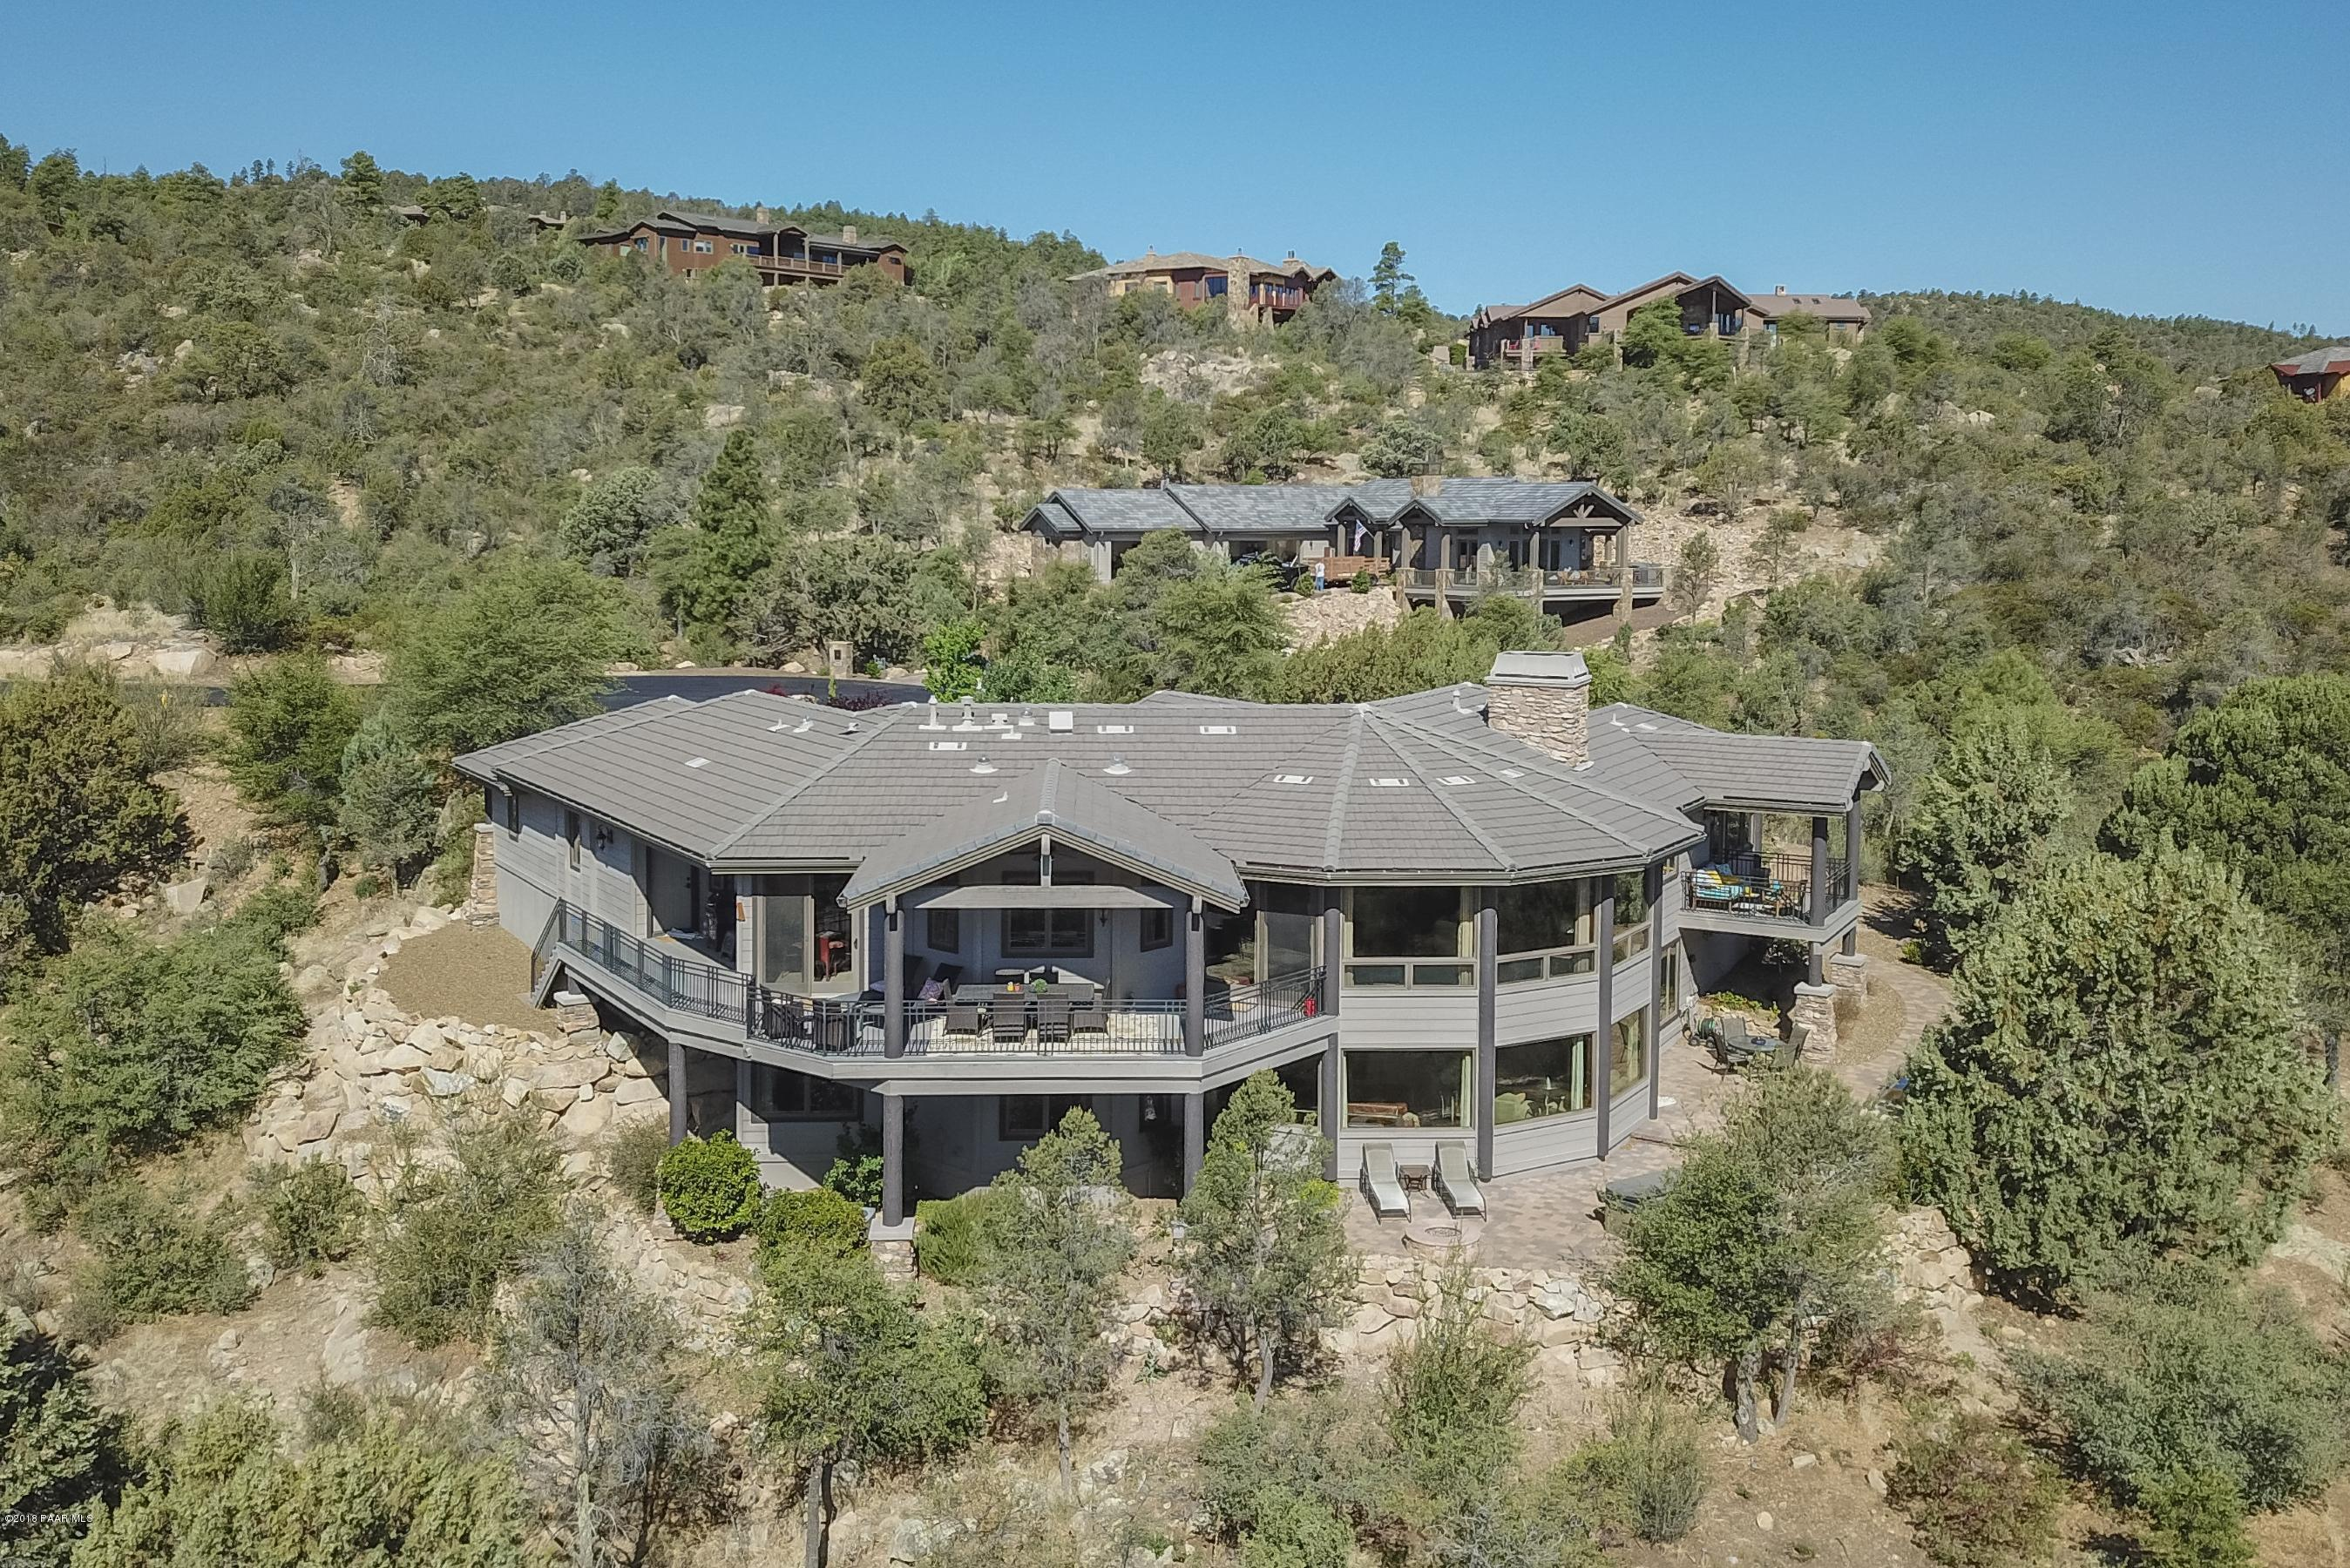 805 Mavrick Mountain Trail Prescott, AZ 86303 - MLS #: 1012495